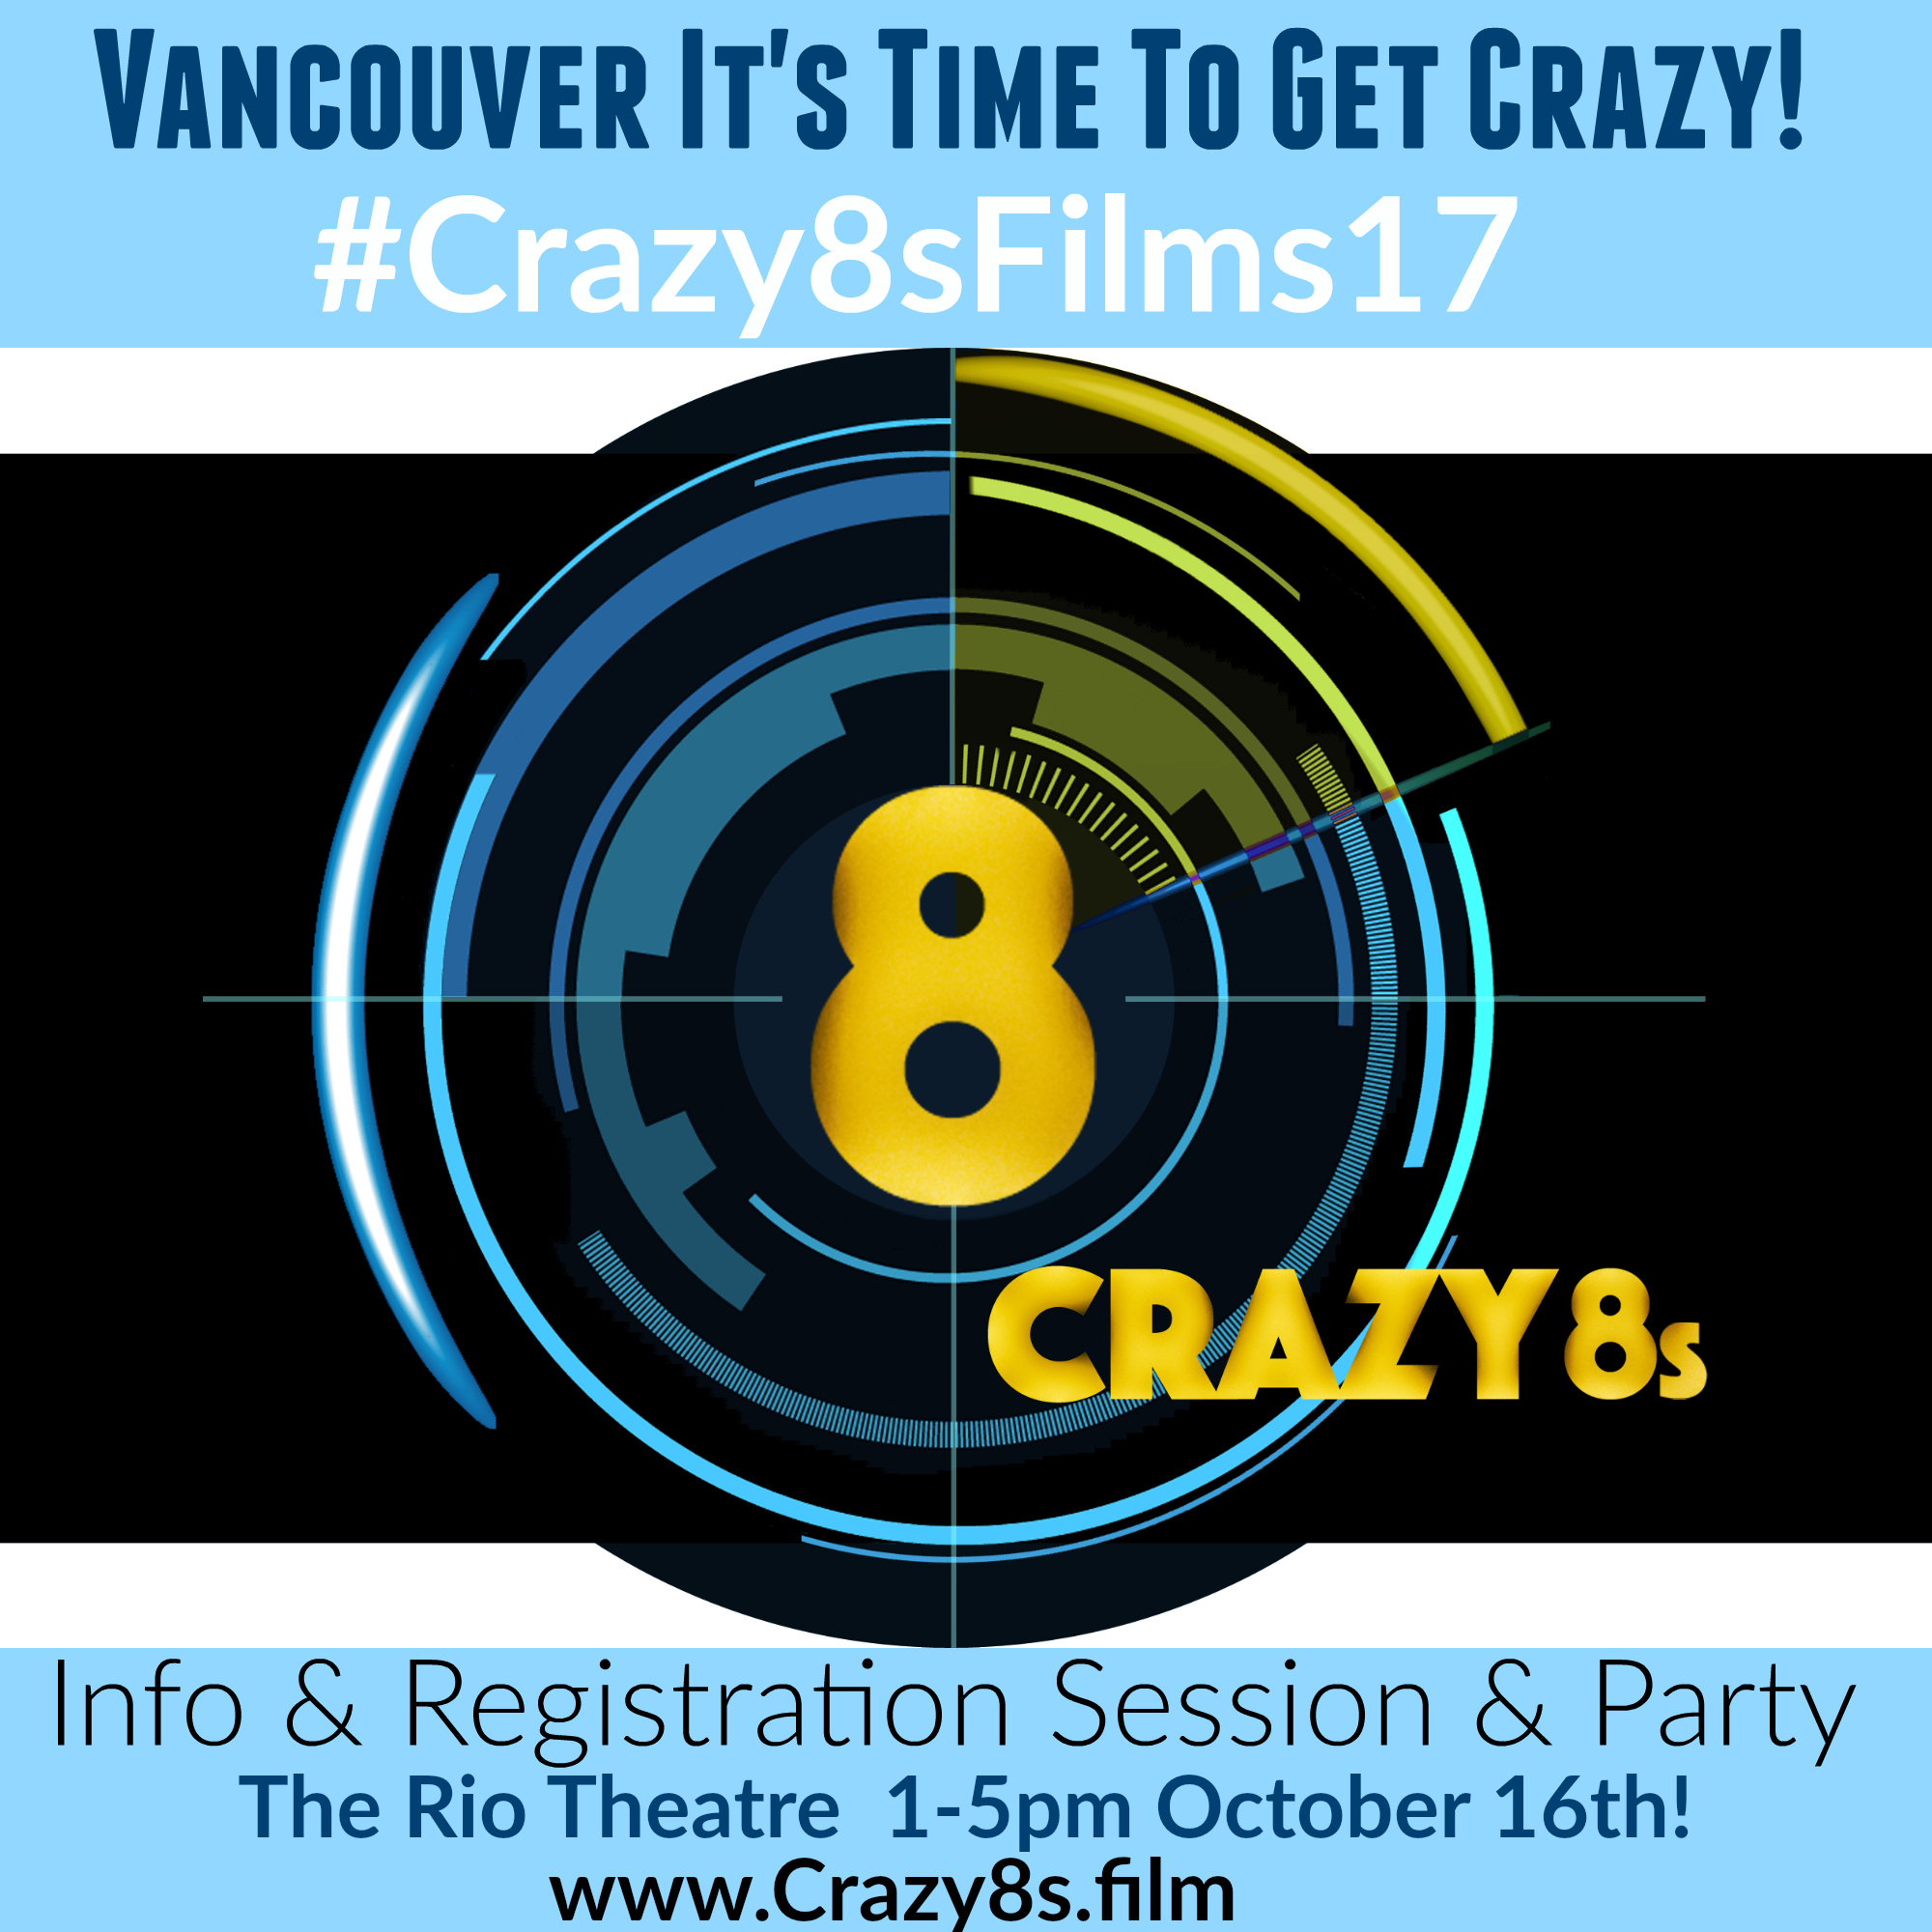 crazy8sfilms17-info-session-meme-1